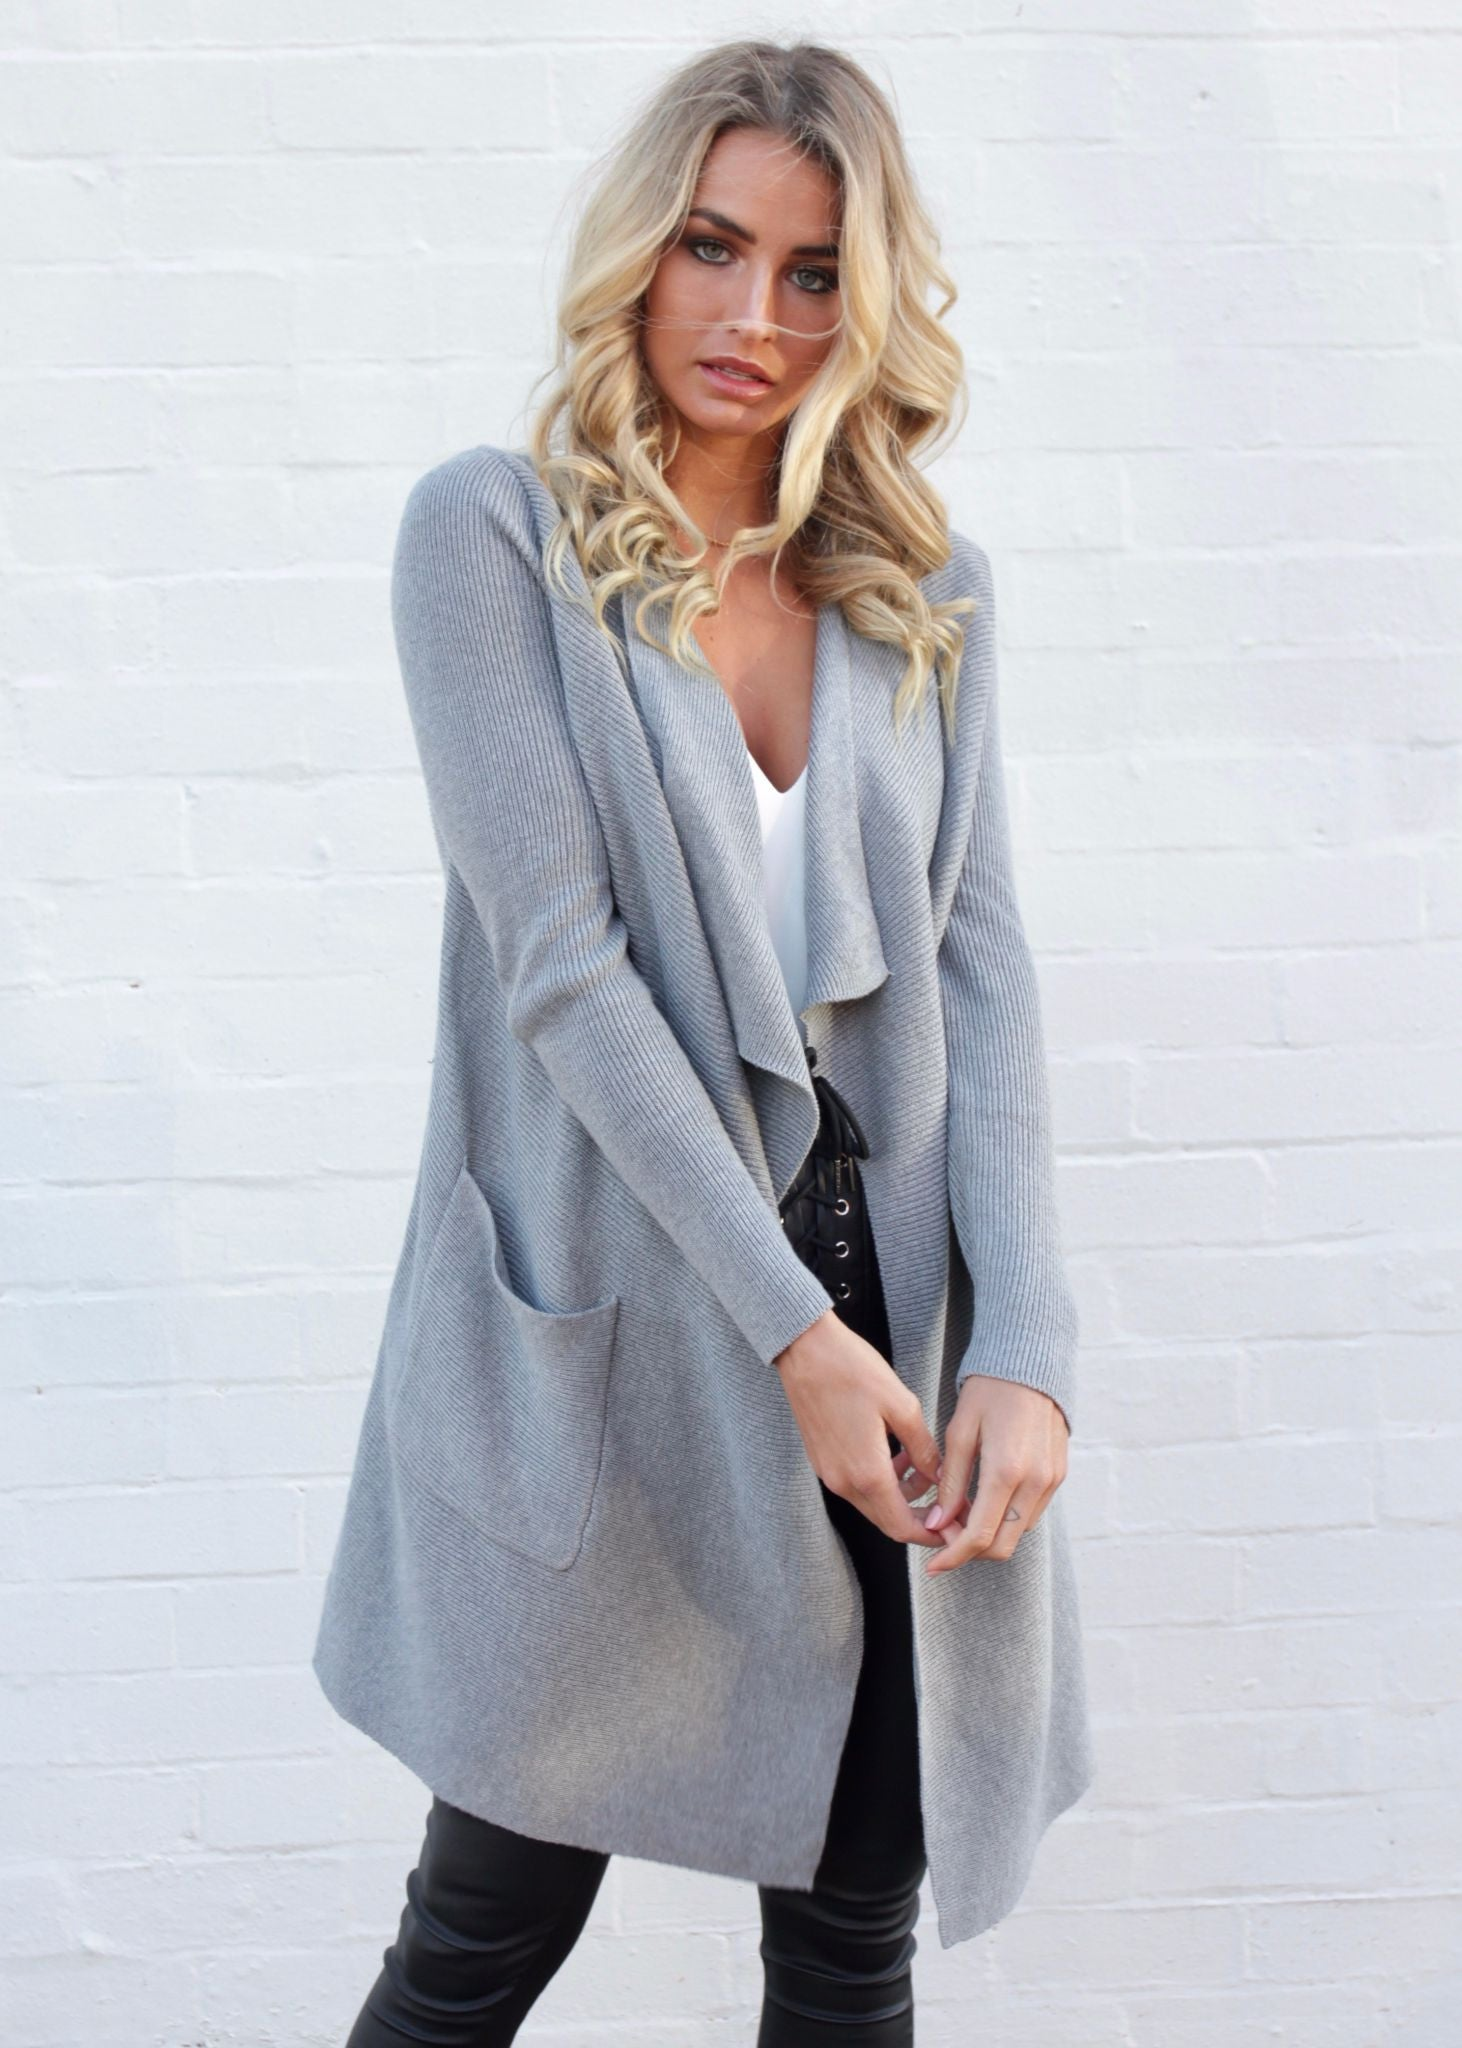 Close Encounters Knit Cardigan - Grey